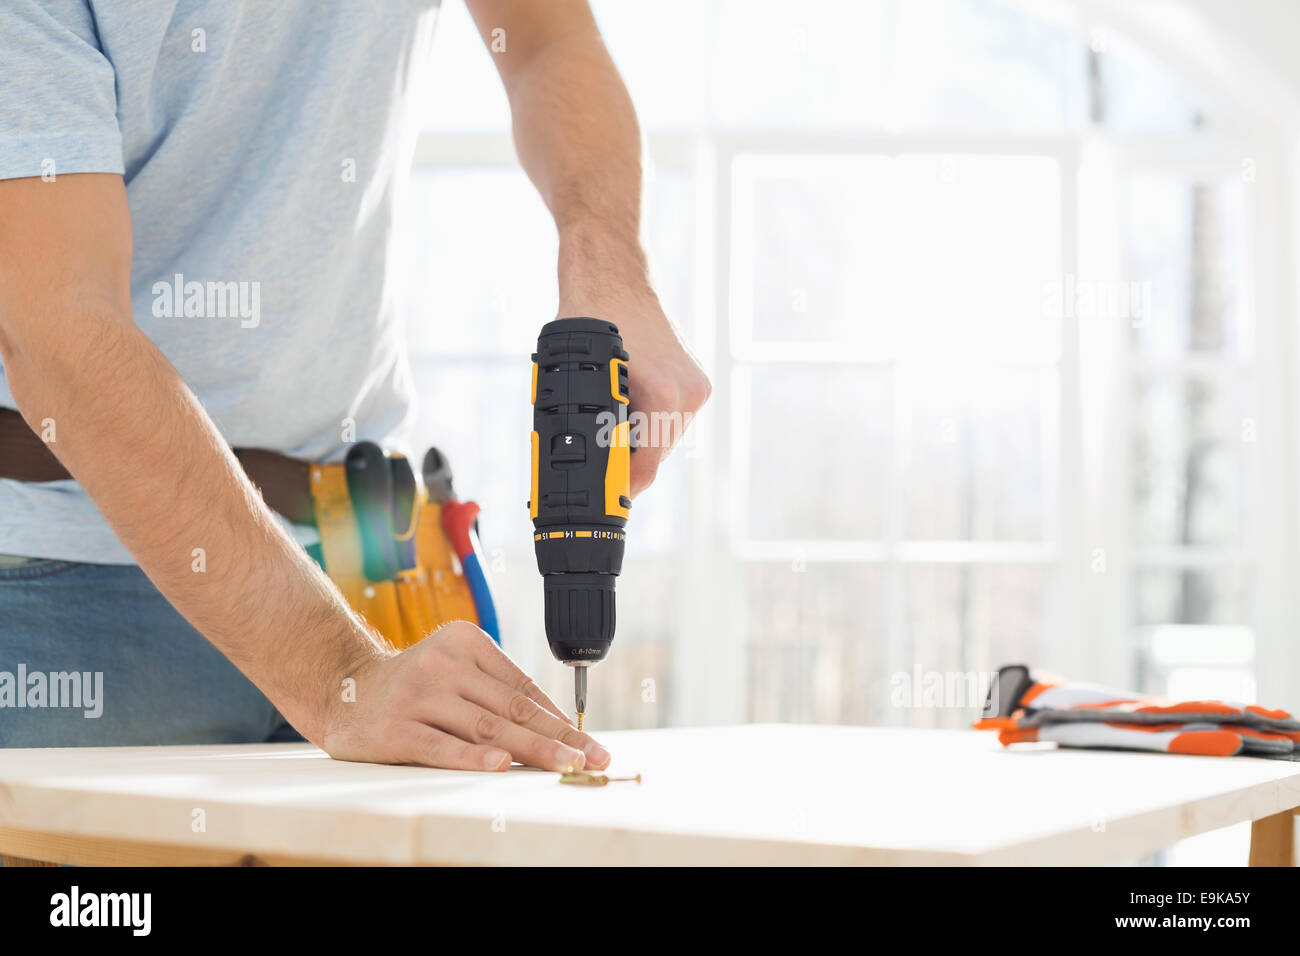 Midsection of man drilling nail on table - Stock Image